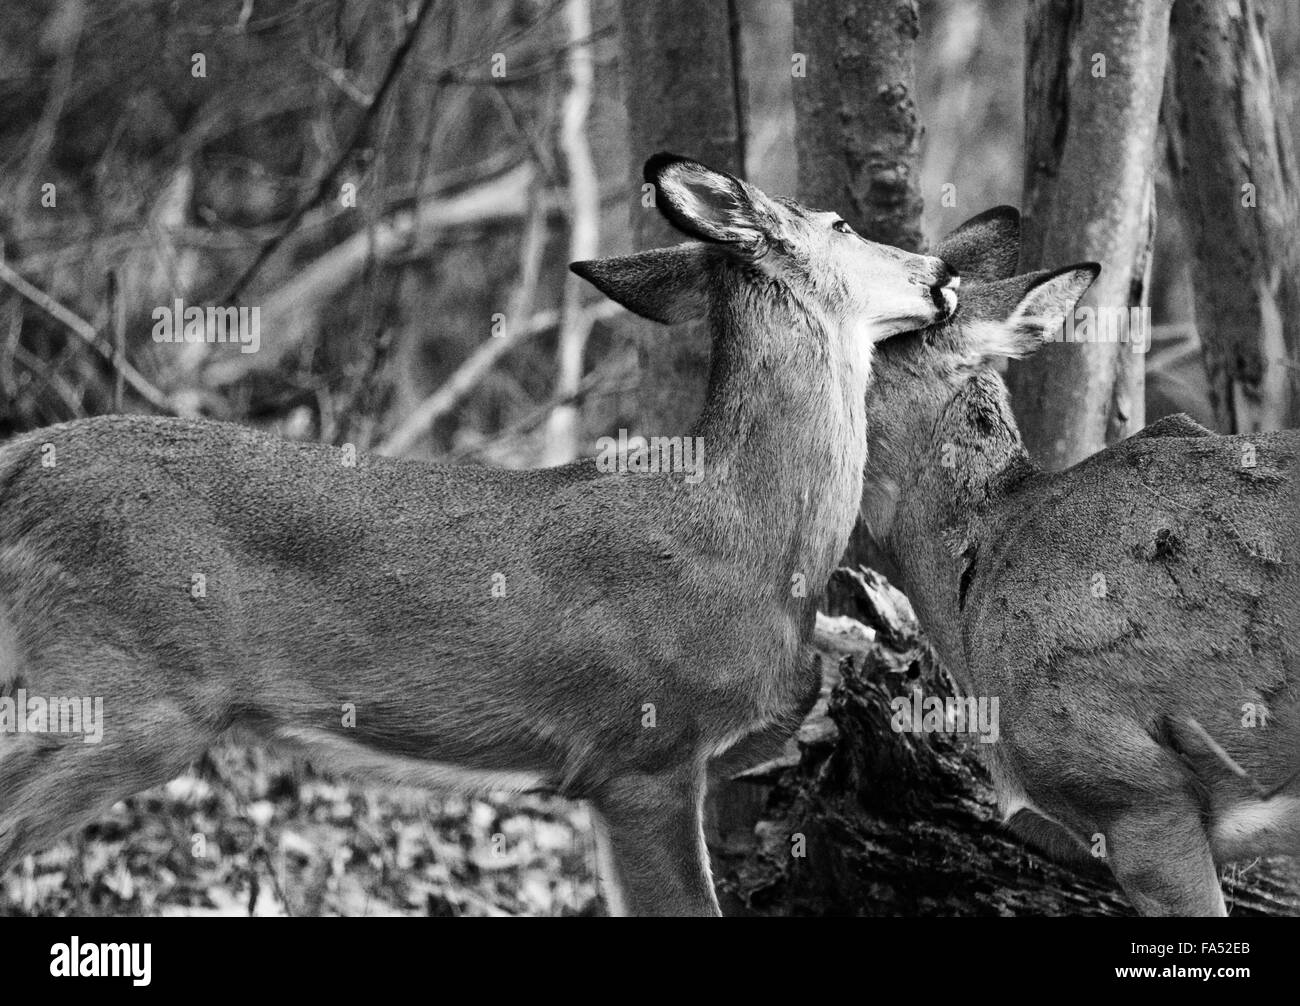 A pair of deers show love to each other - Stock Image